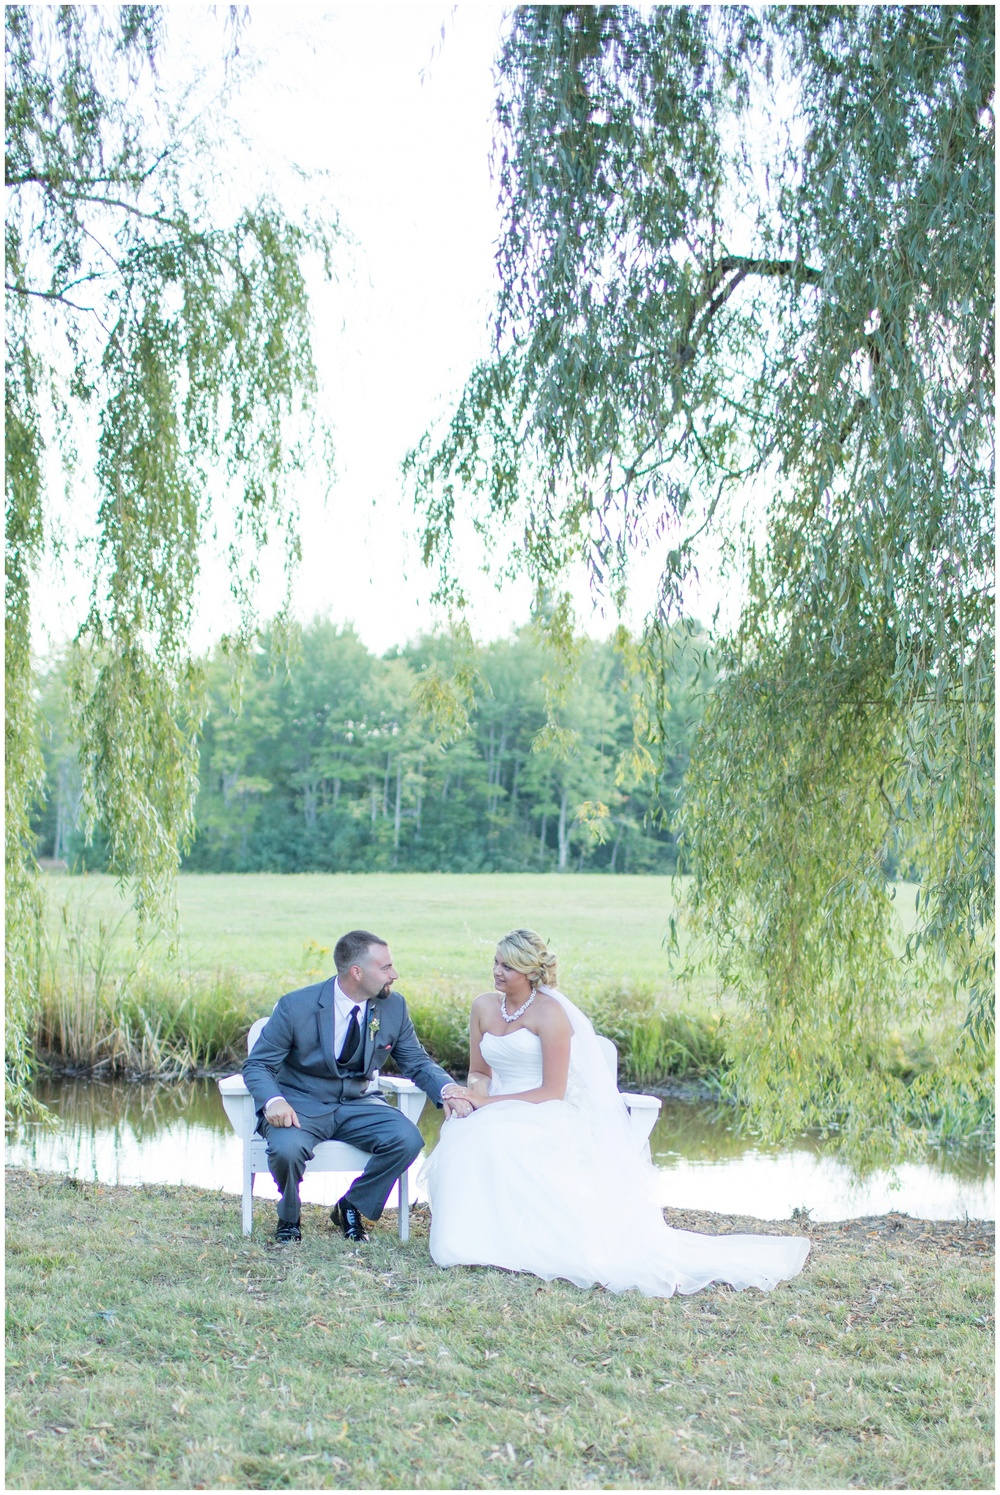 Seacoast NH Wedding Photographer | weeping willow wedding formal photos | Amy Brown Photography